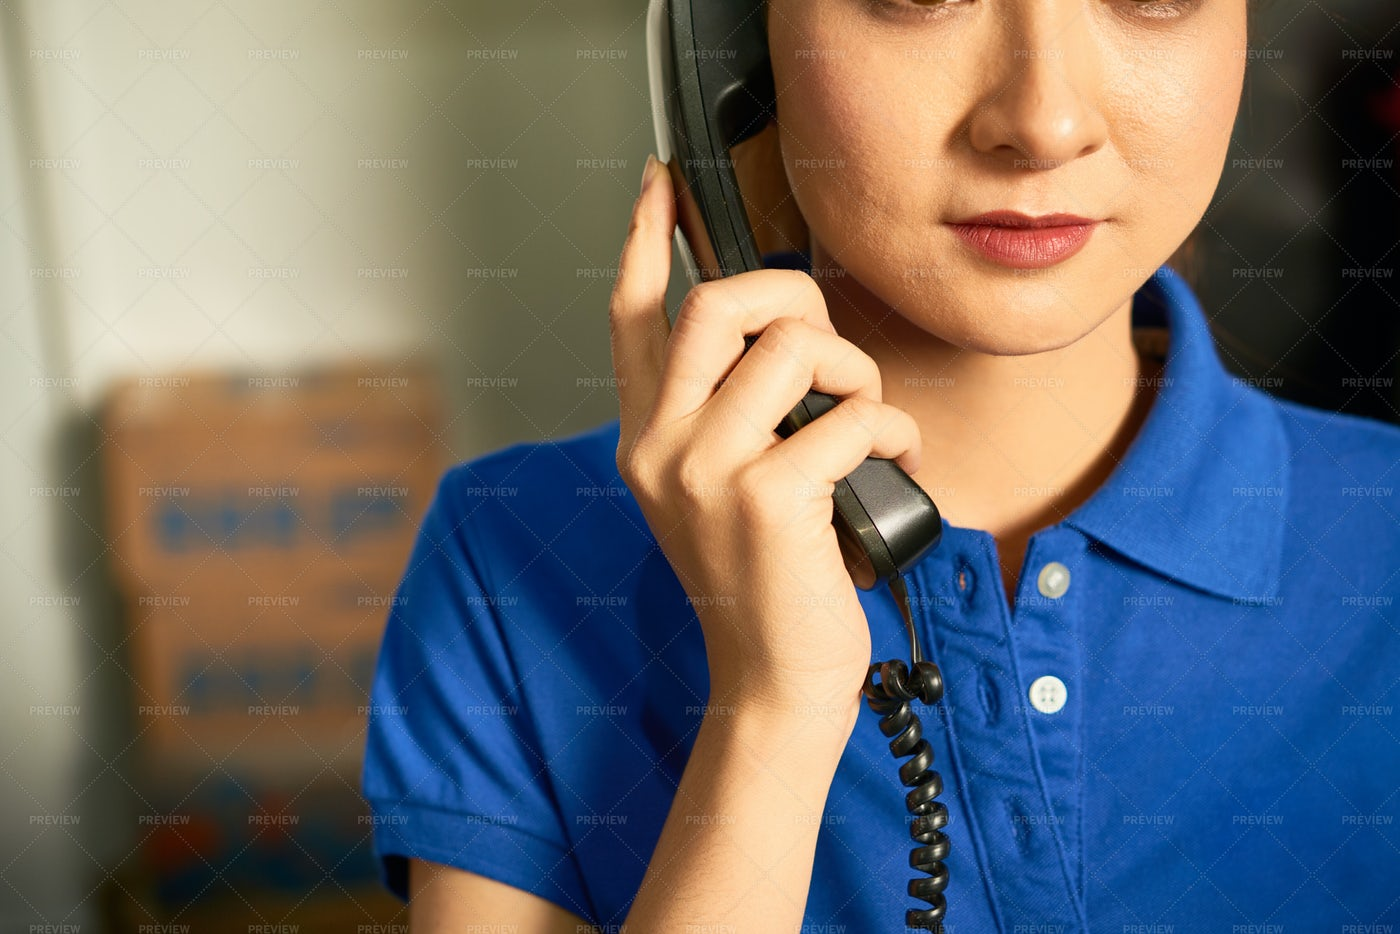 Shop Assistant On Phone: Stock Photos